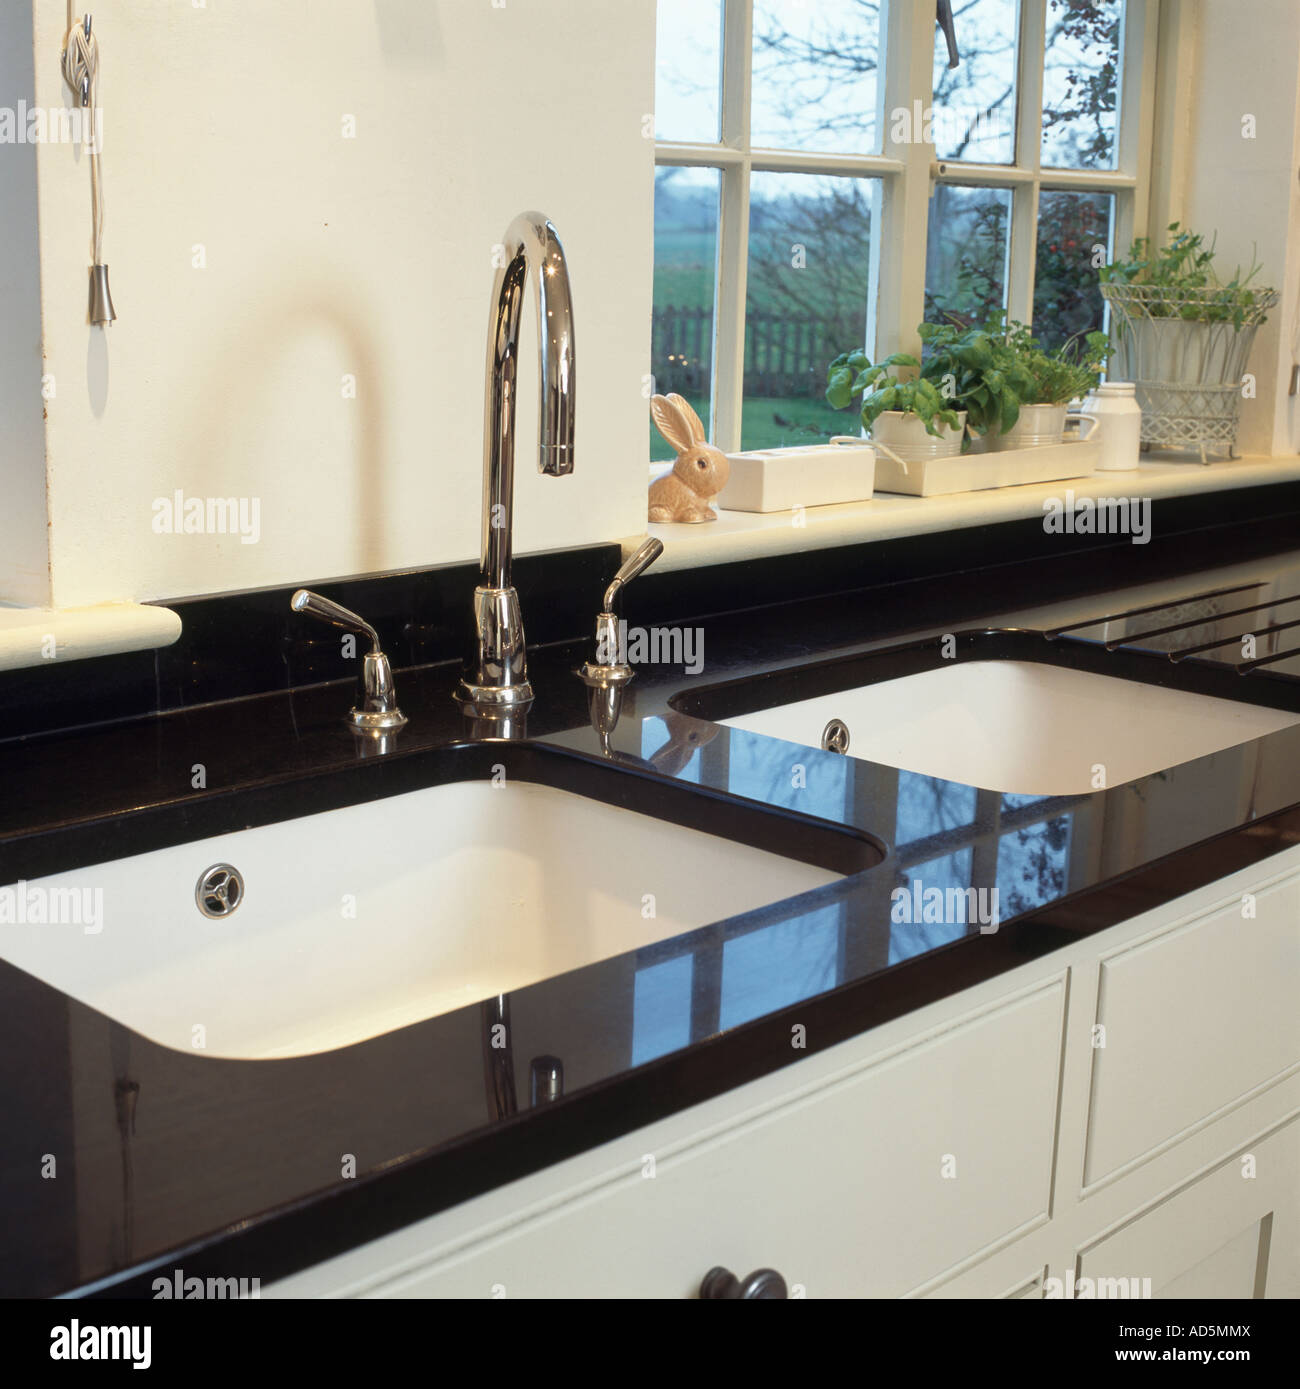 White Kitchen Taps: Double White Sinks And Chrome Taps In Black Granite